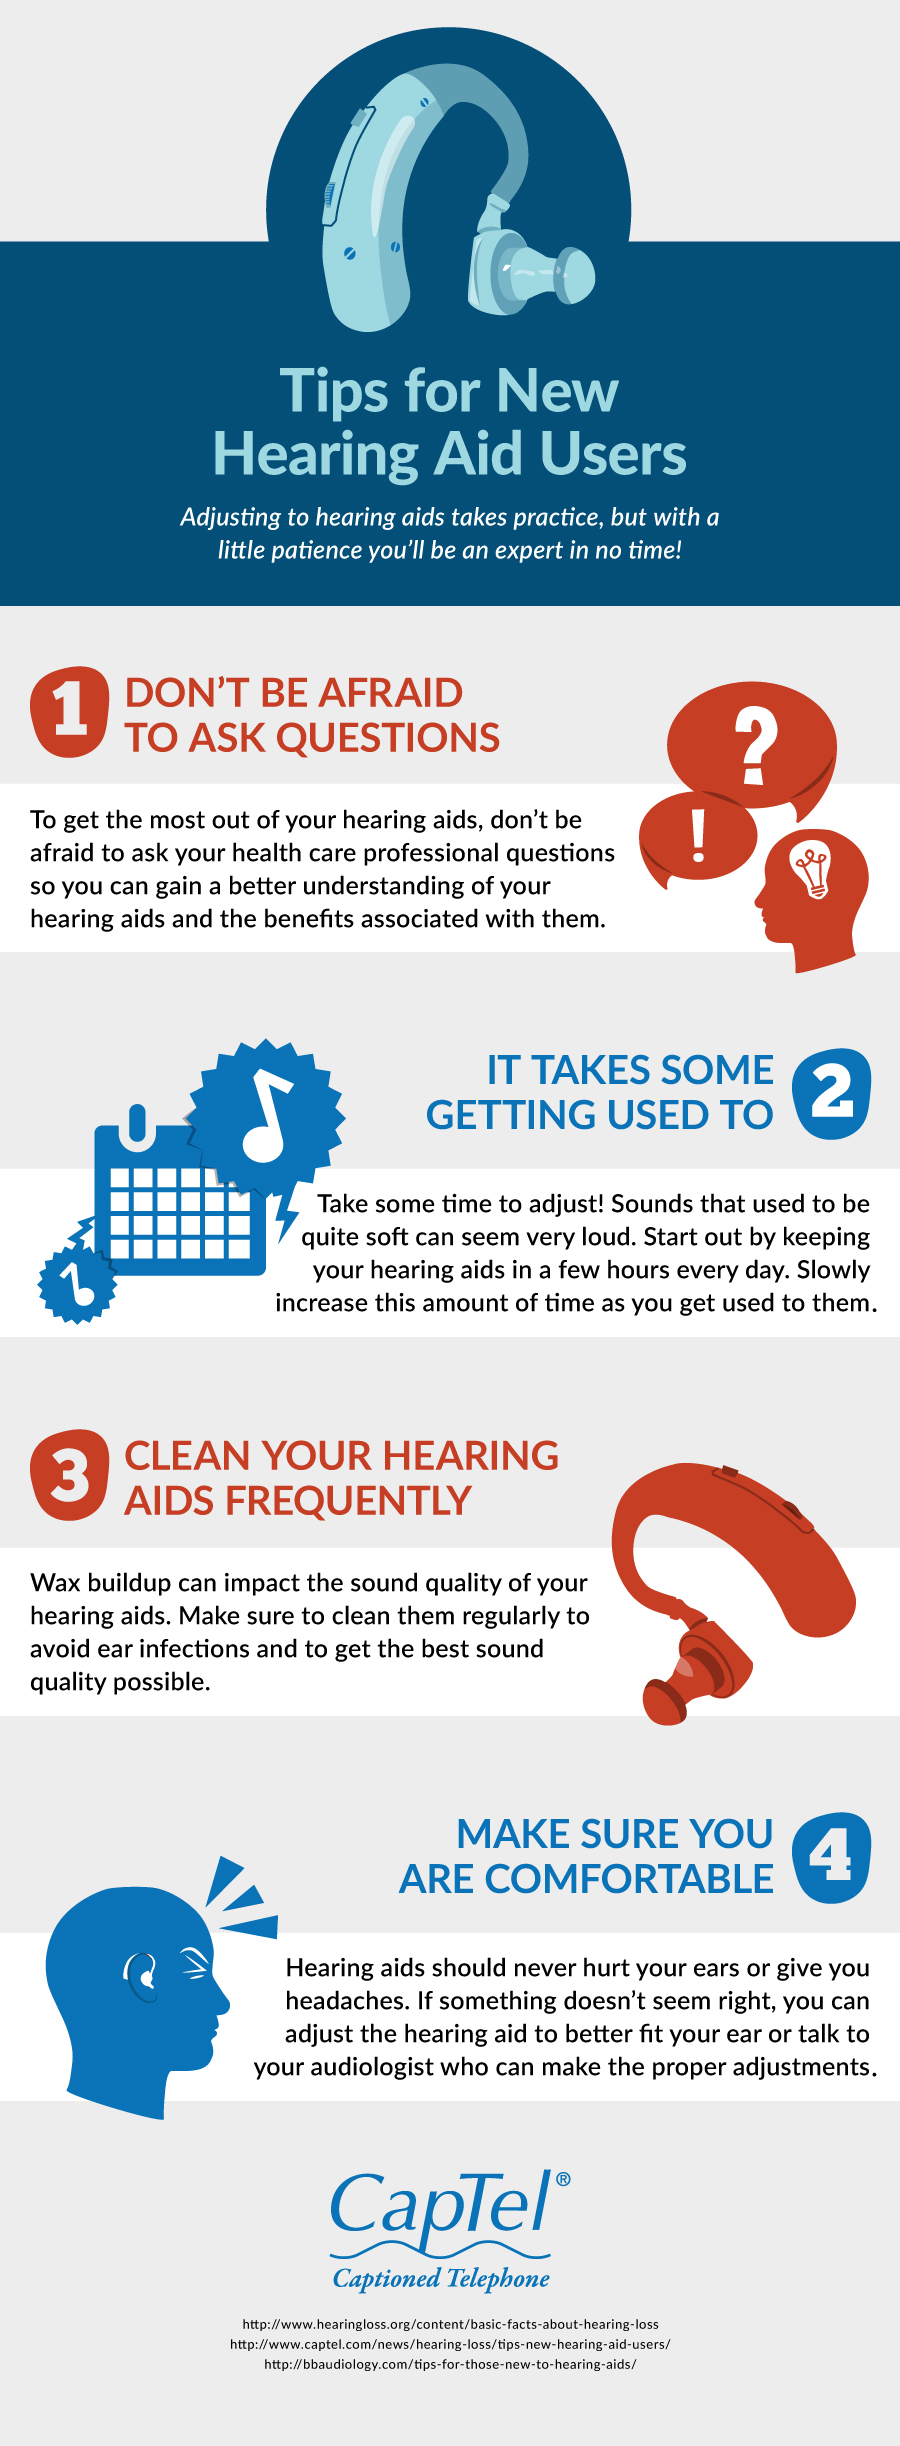 4 tips for new hearing aid users